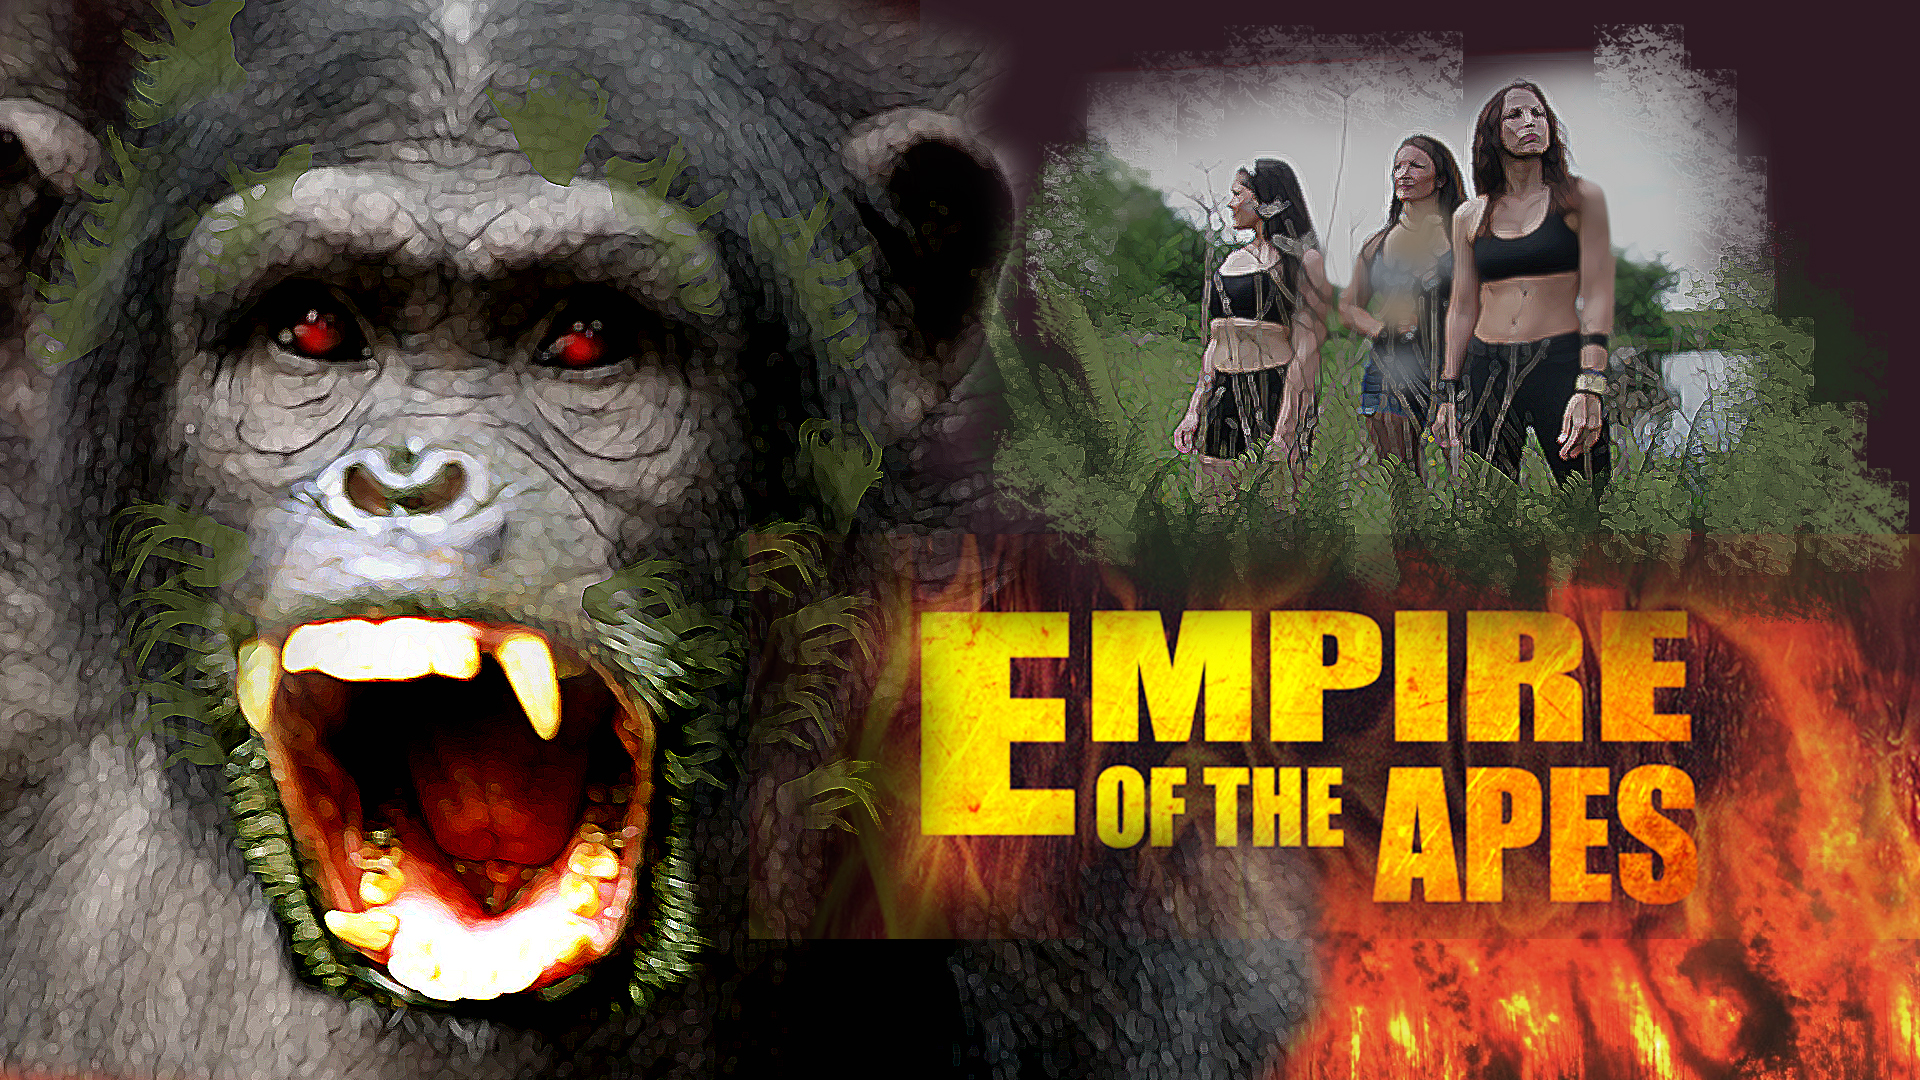 Amazon.com: Watch Empire of the Apes